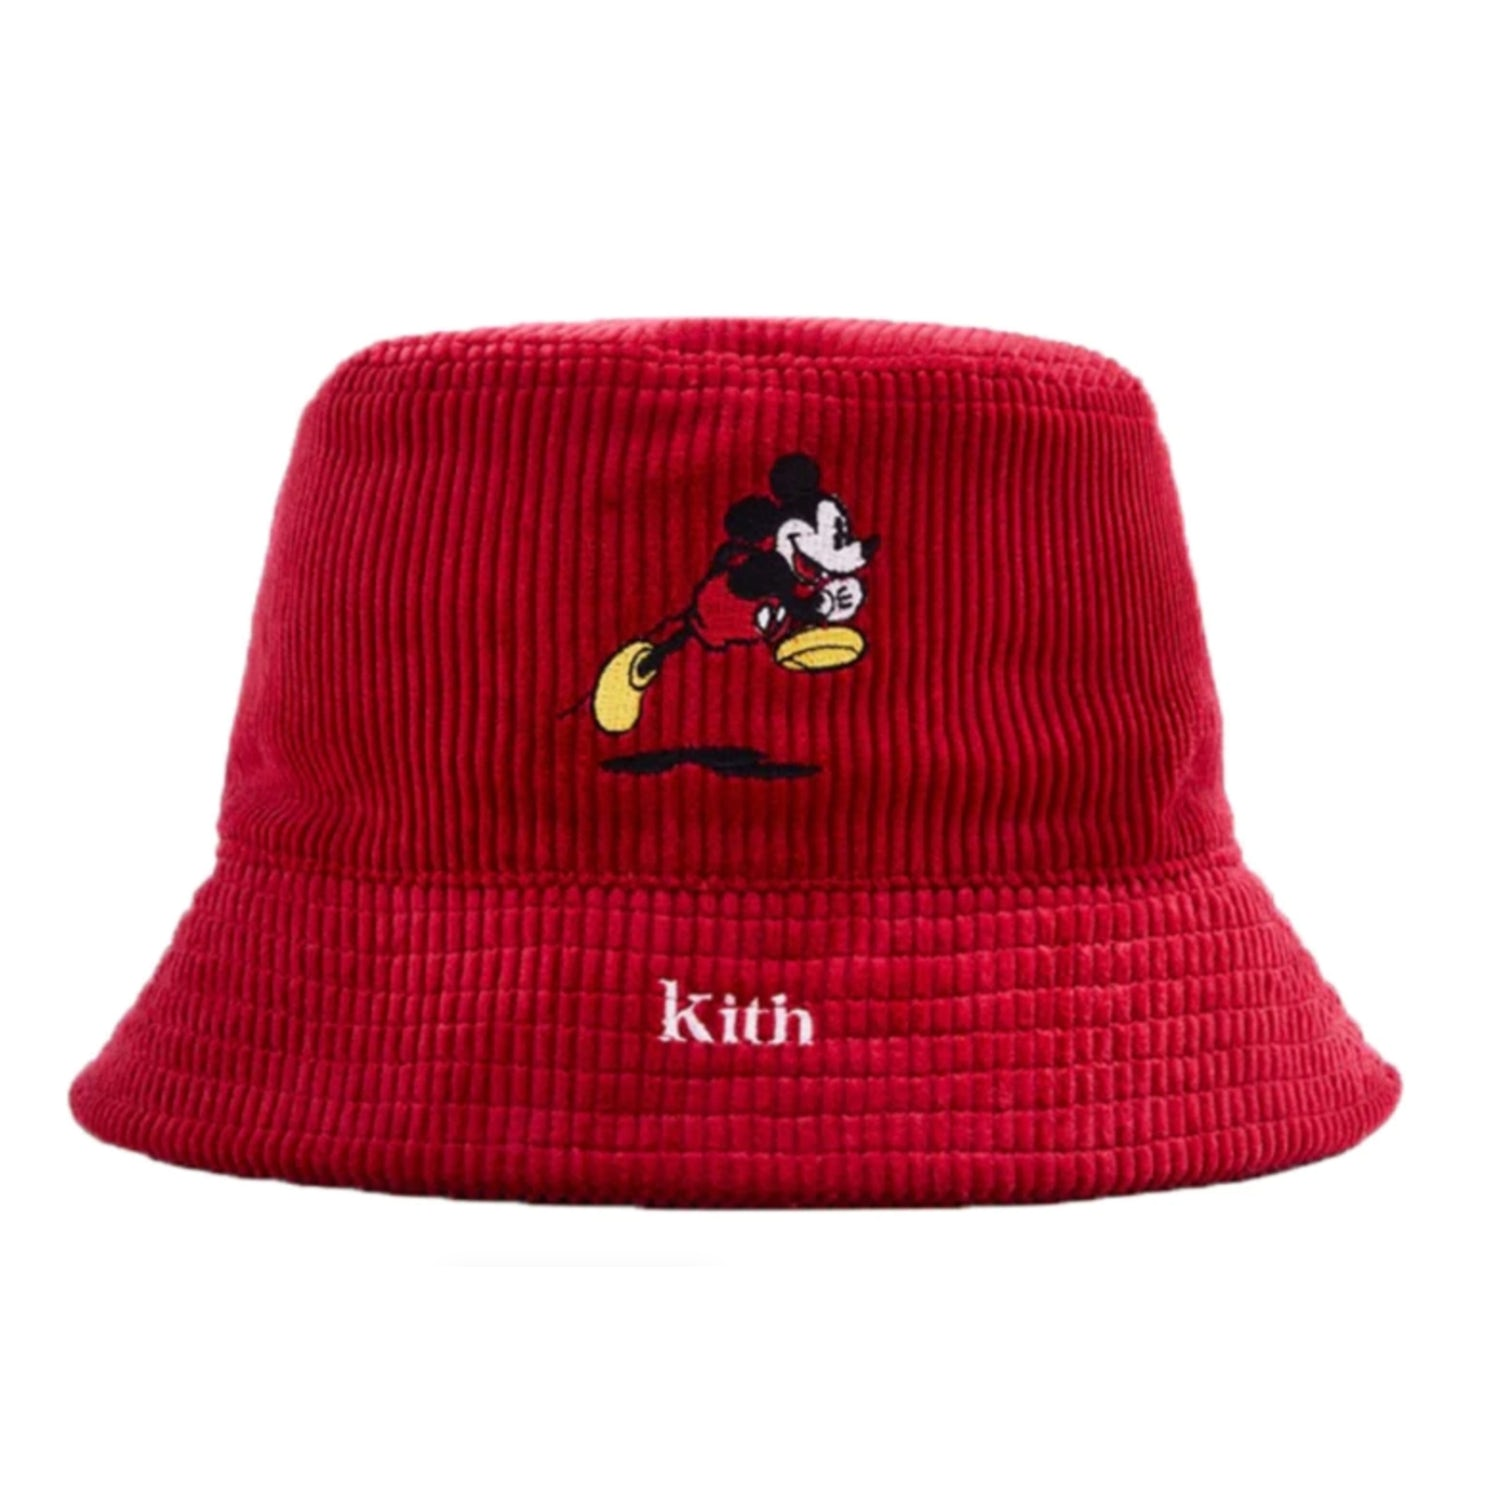 Kith x Disney Mickey Corduroy Bucket Hat Red